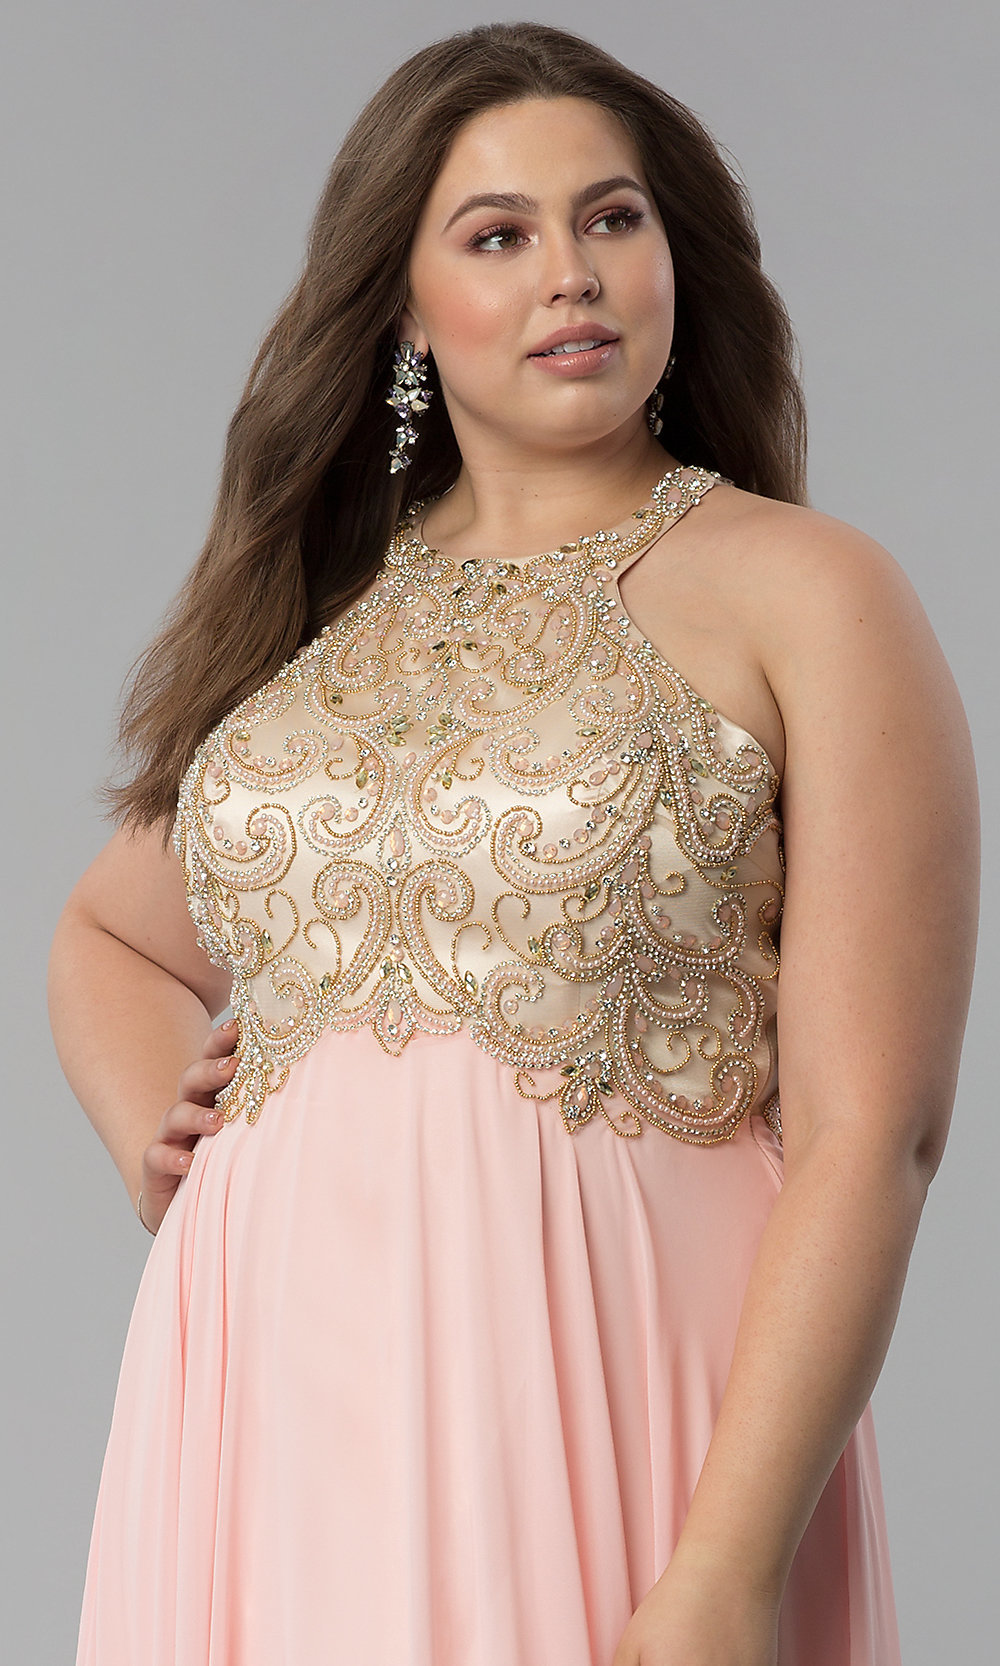 74176d1f454 Image of embellished racerback long plus-size prom dress. Style  DQ-9776P.  Tap to expand